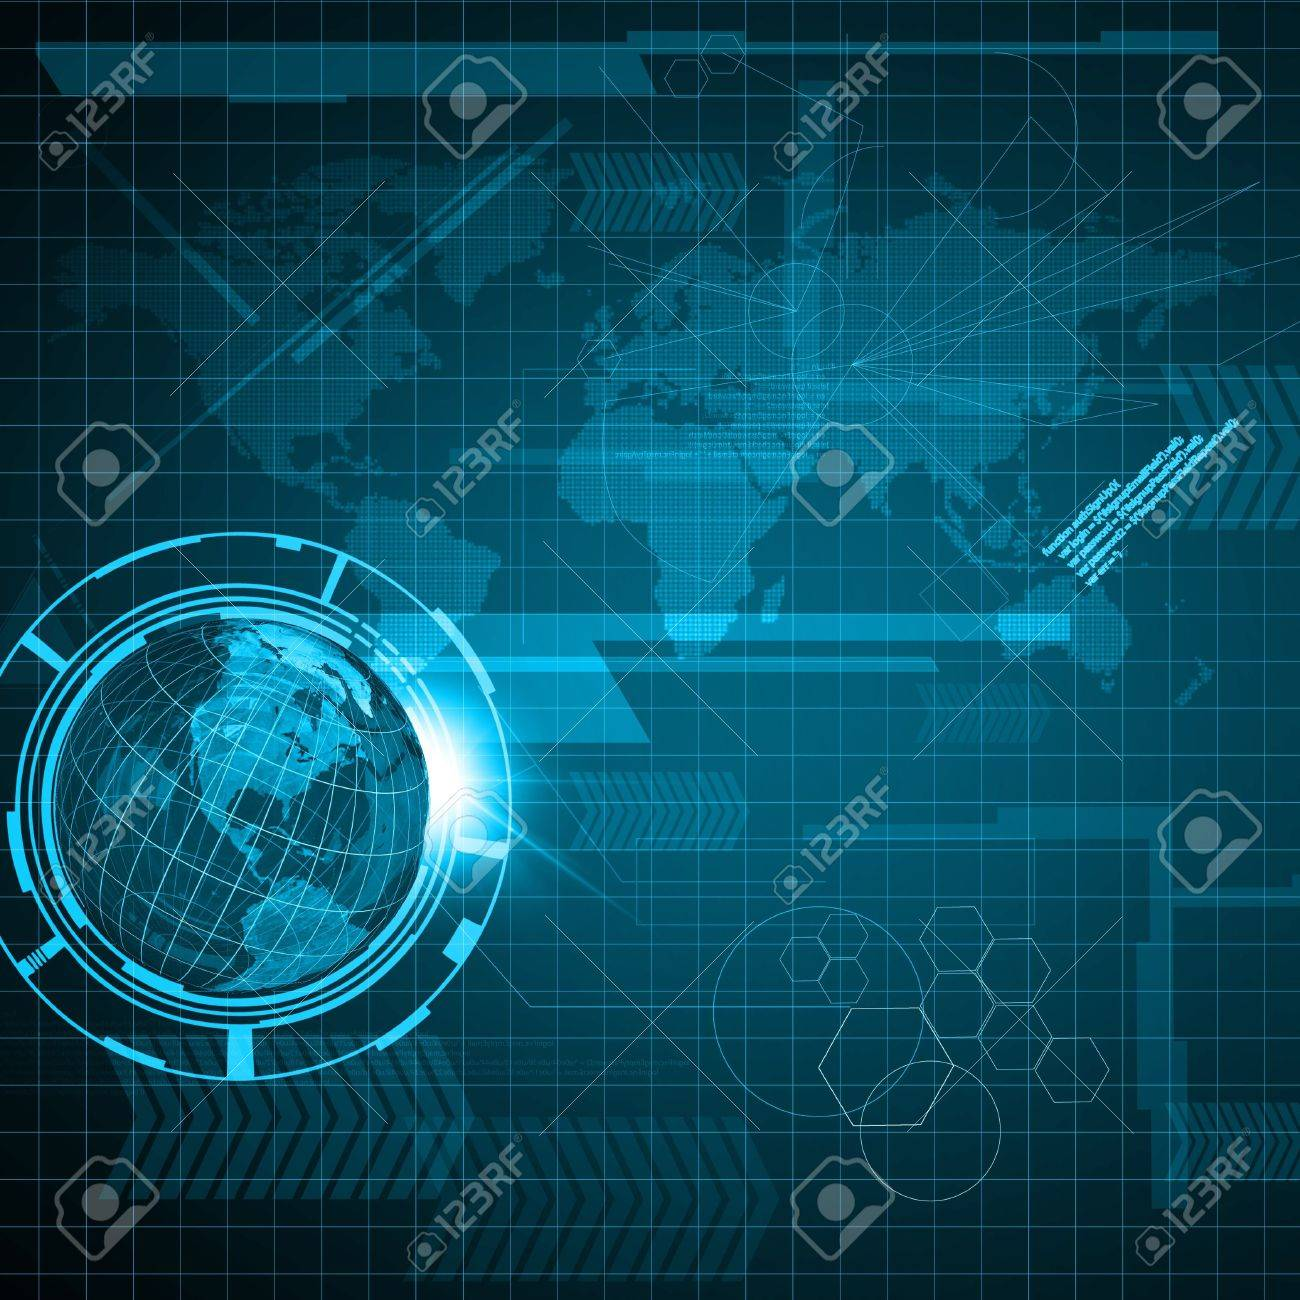 Background of Technology and Earth globe Stock Photo - 15885217